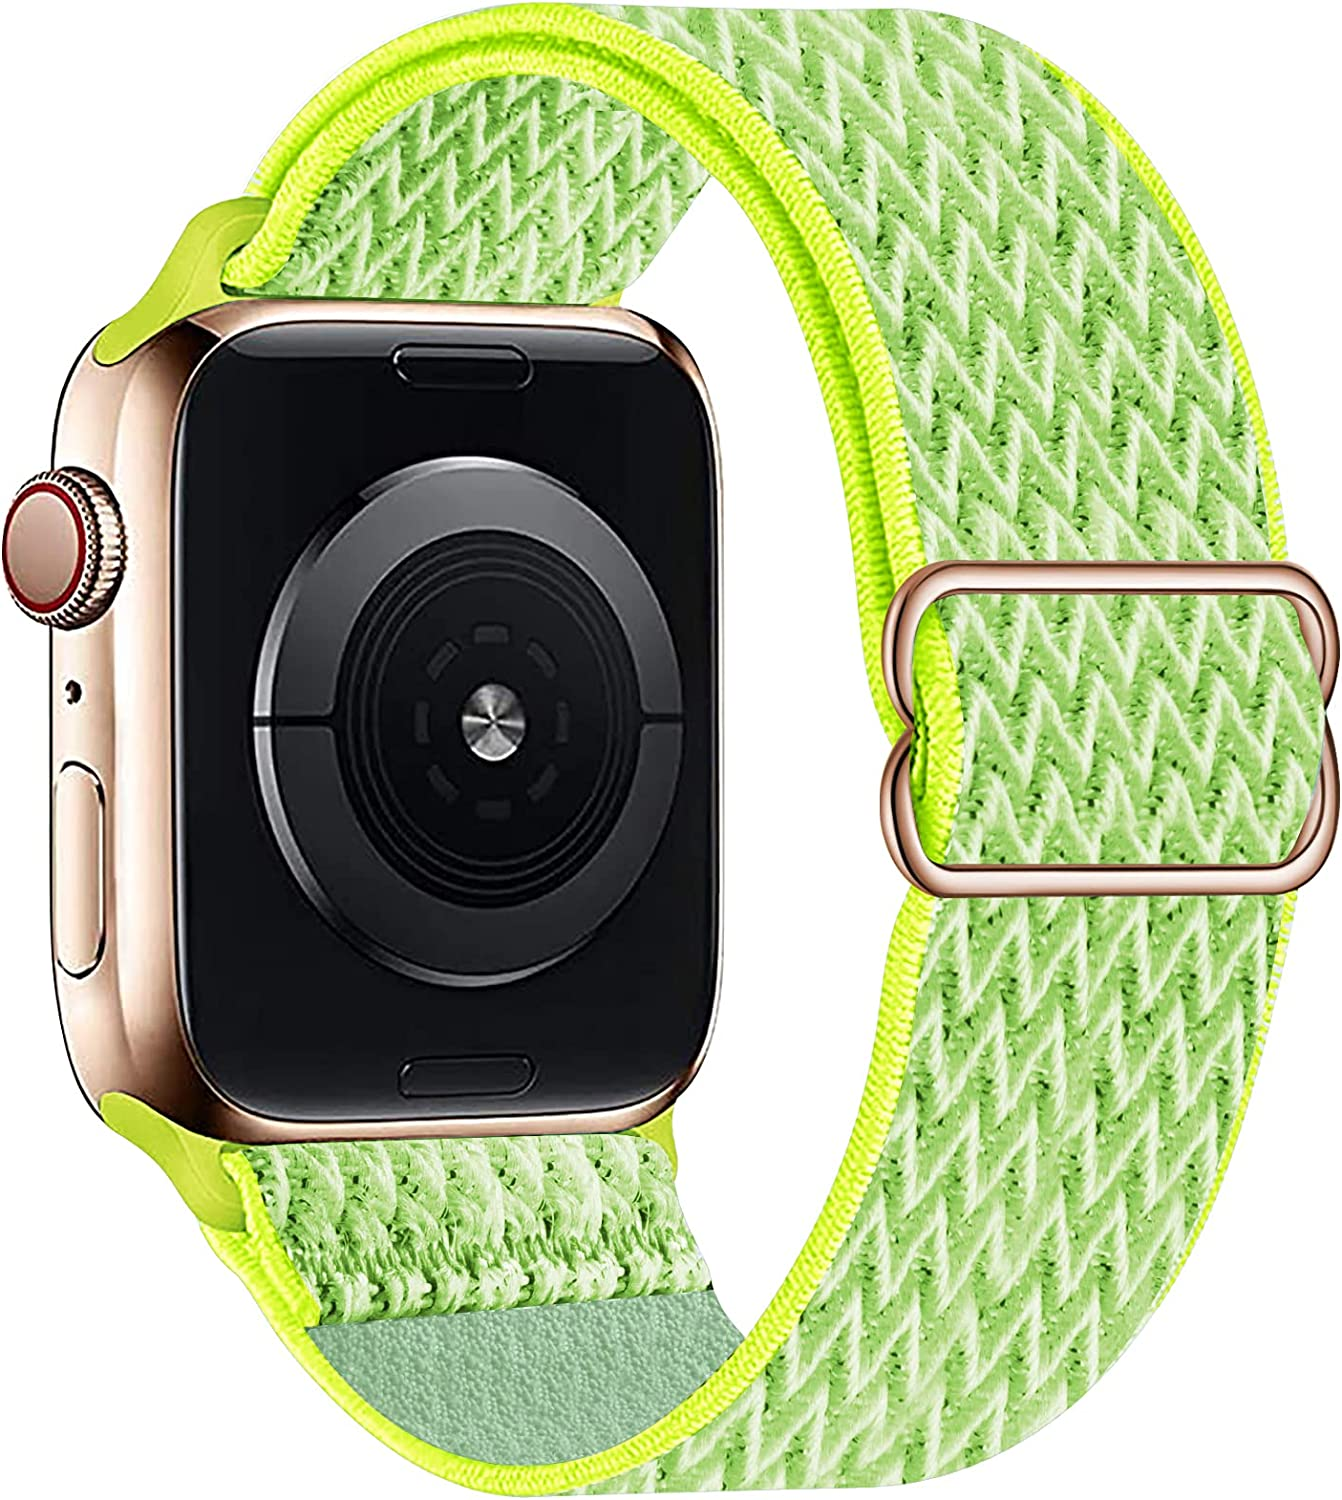 OHCBOOGIE Stretchy Solo Loop Strap Compatible with Apple Watch Bands 38mm 40mm 42mm 44mm ,Adjustable Stretch Braided Sport Elastics Weave Nylon Women Men Wristband Compatible with iWatch Series 6/5/4/3/2/1 SE,Flash Light,38/40mm